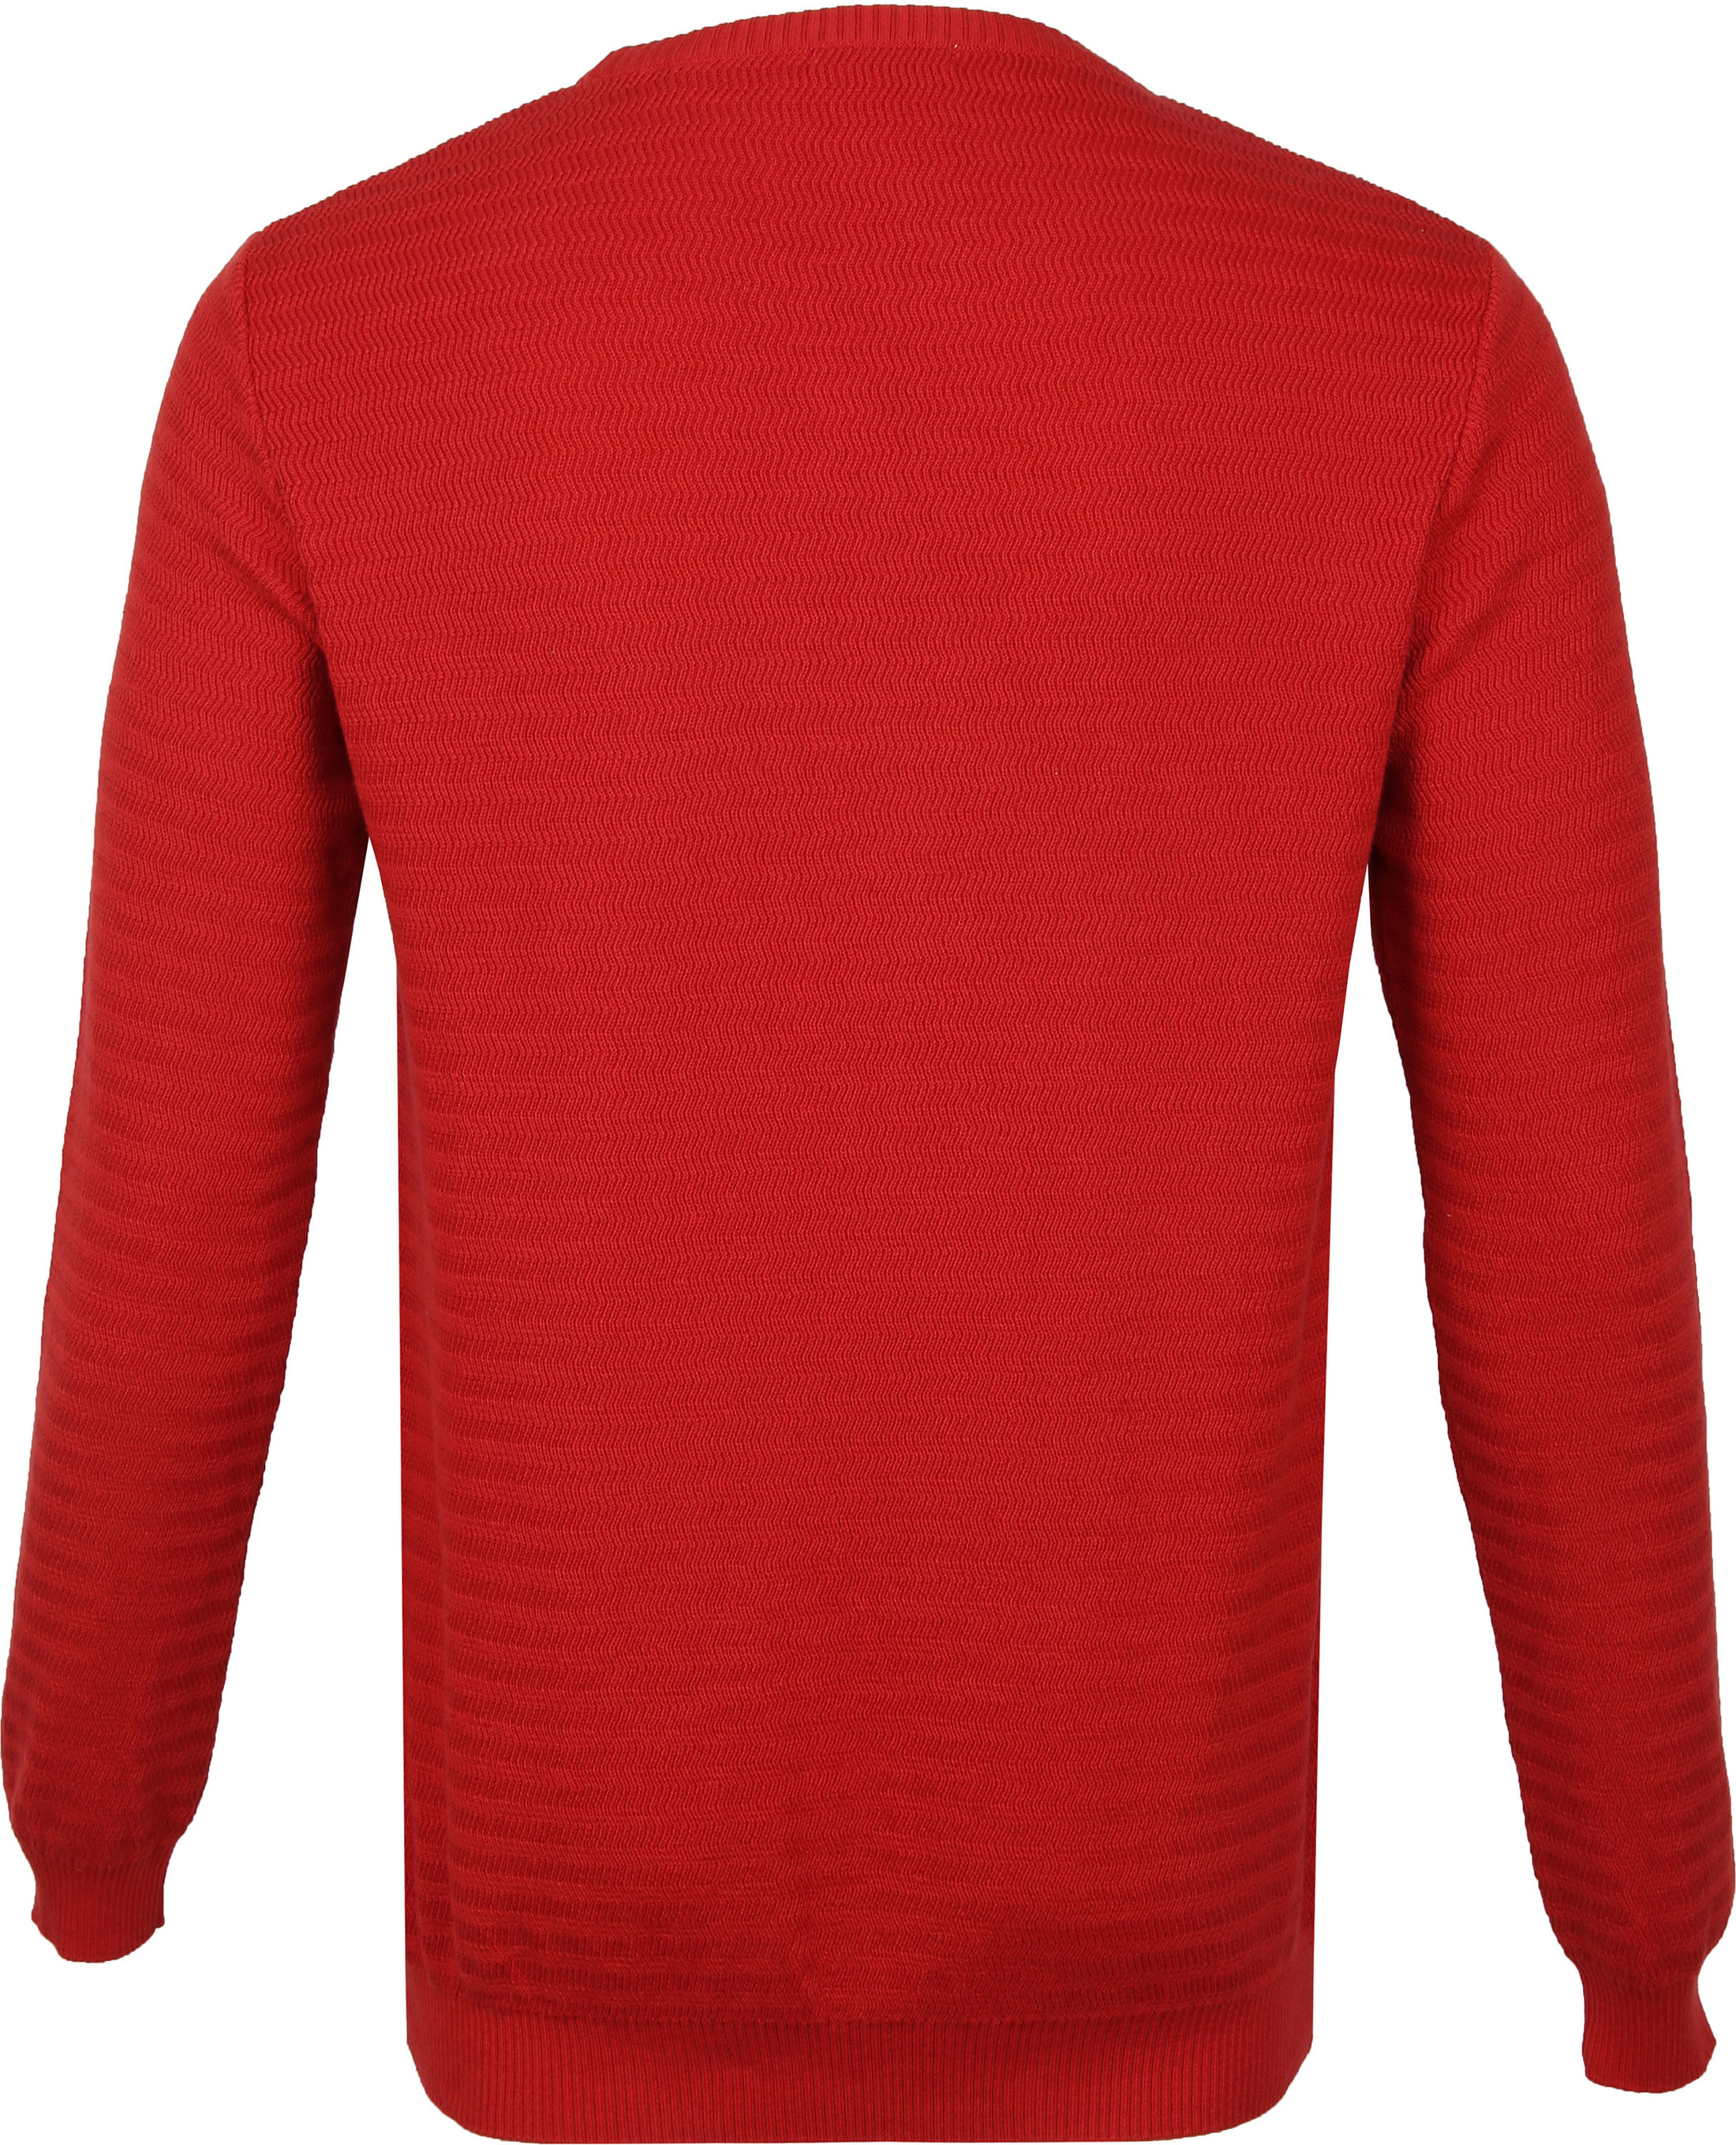 KnowledgeCotton Apparel Trui Waves Rood